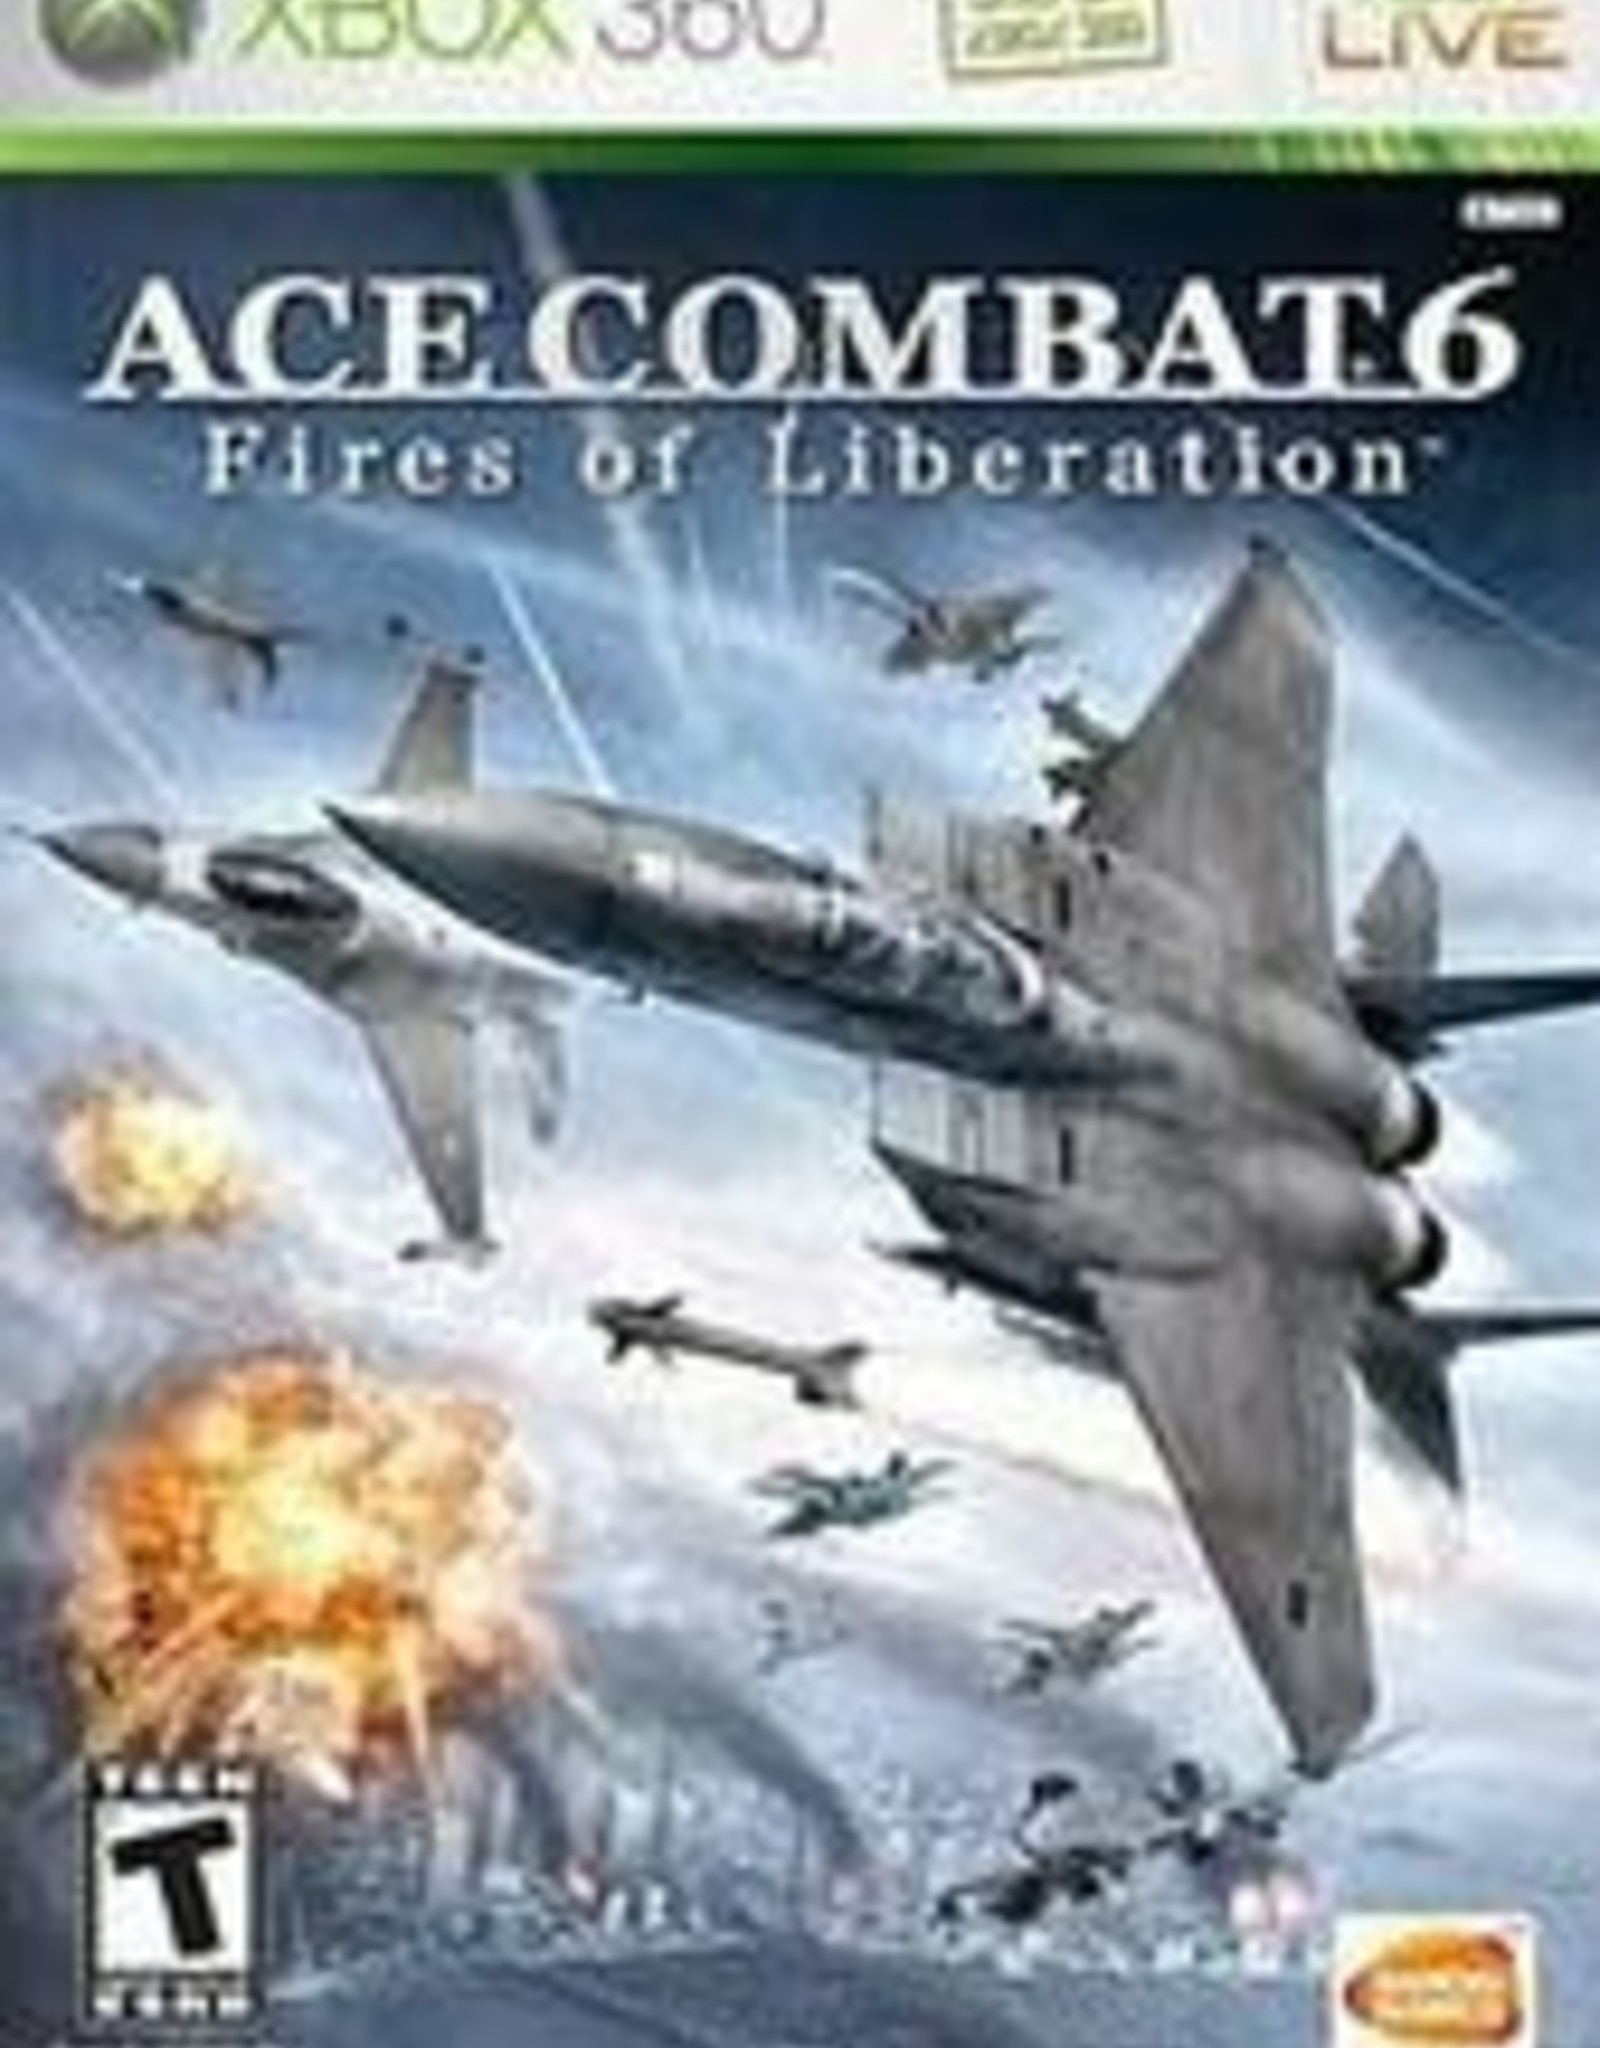 Xbox 360 Ace Combat 6 Fires of Liberation (No Manual)